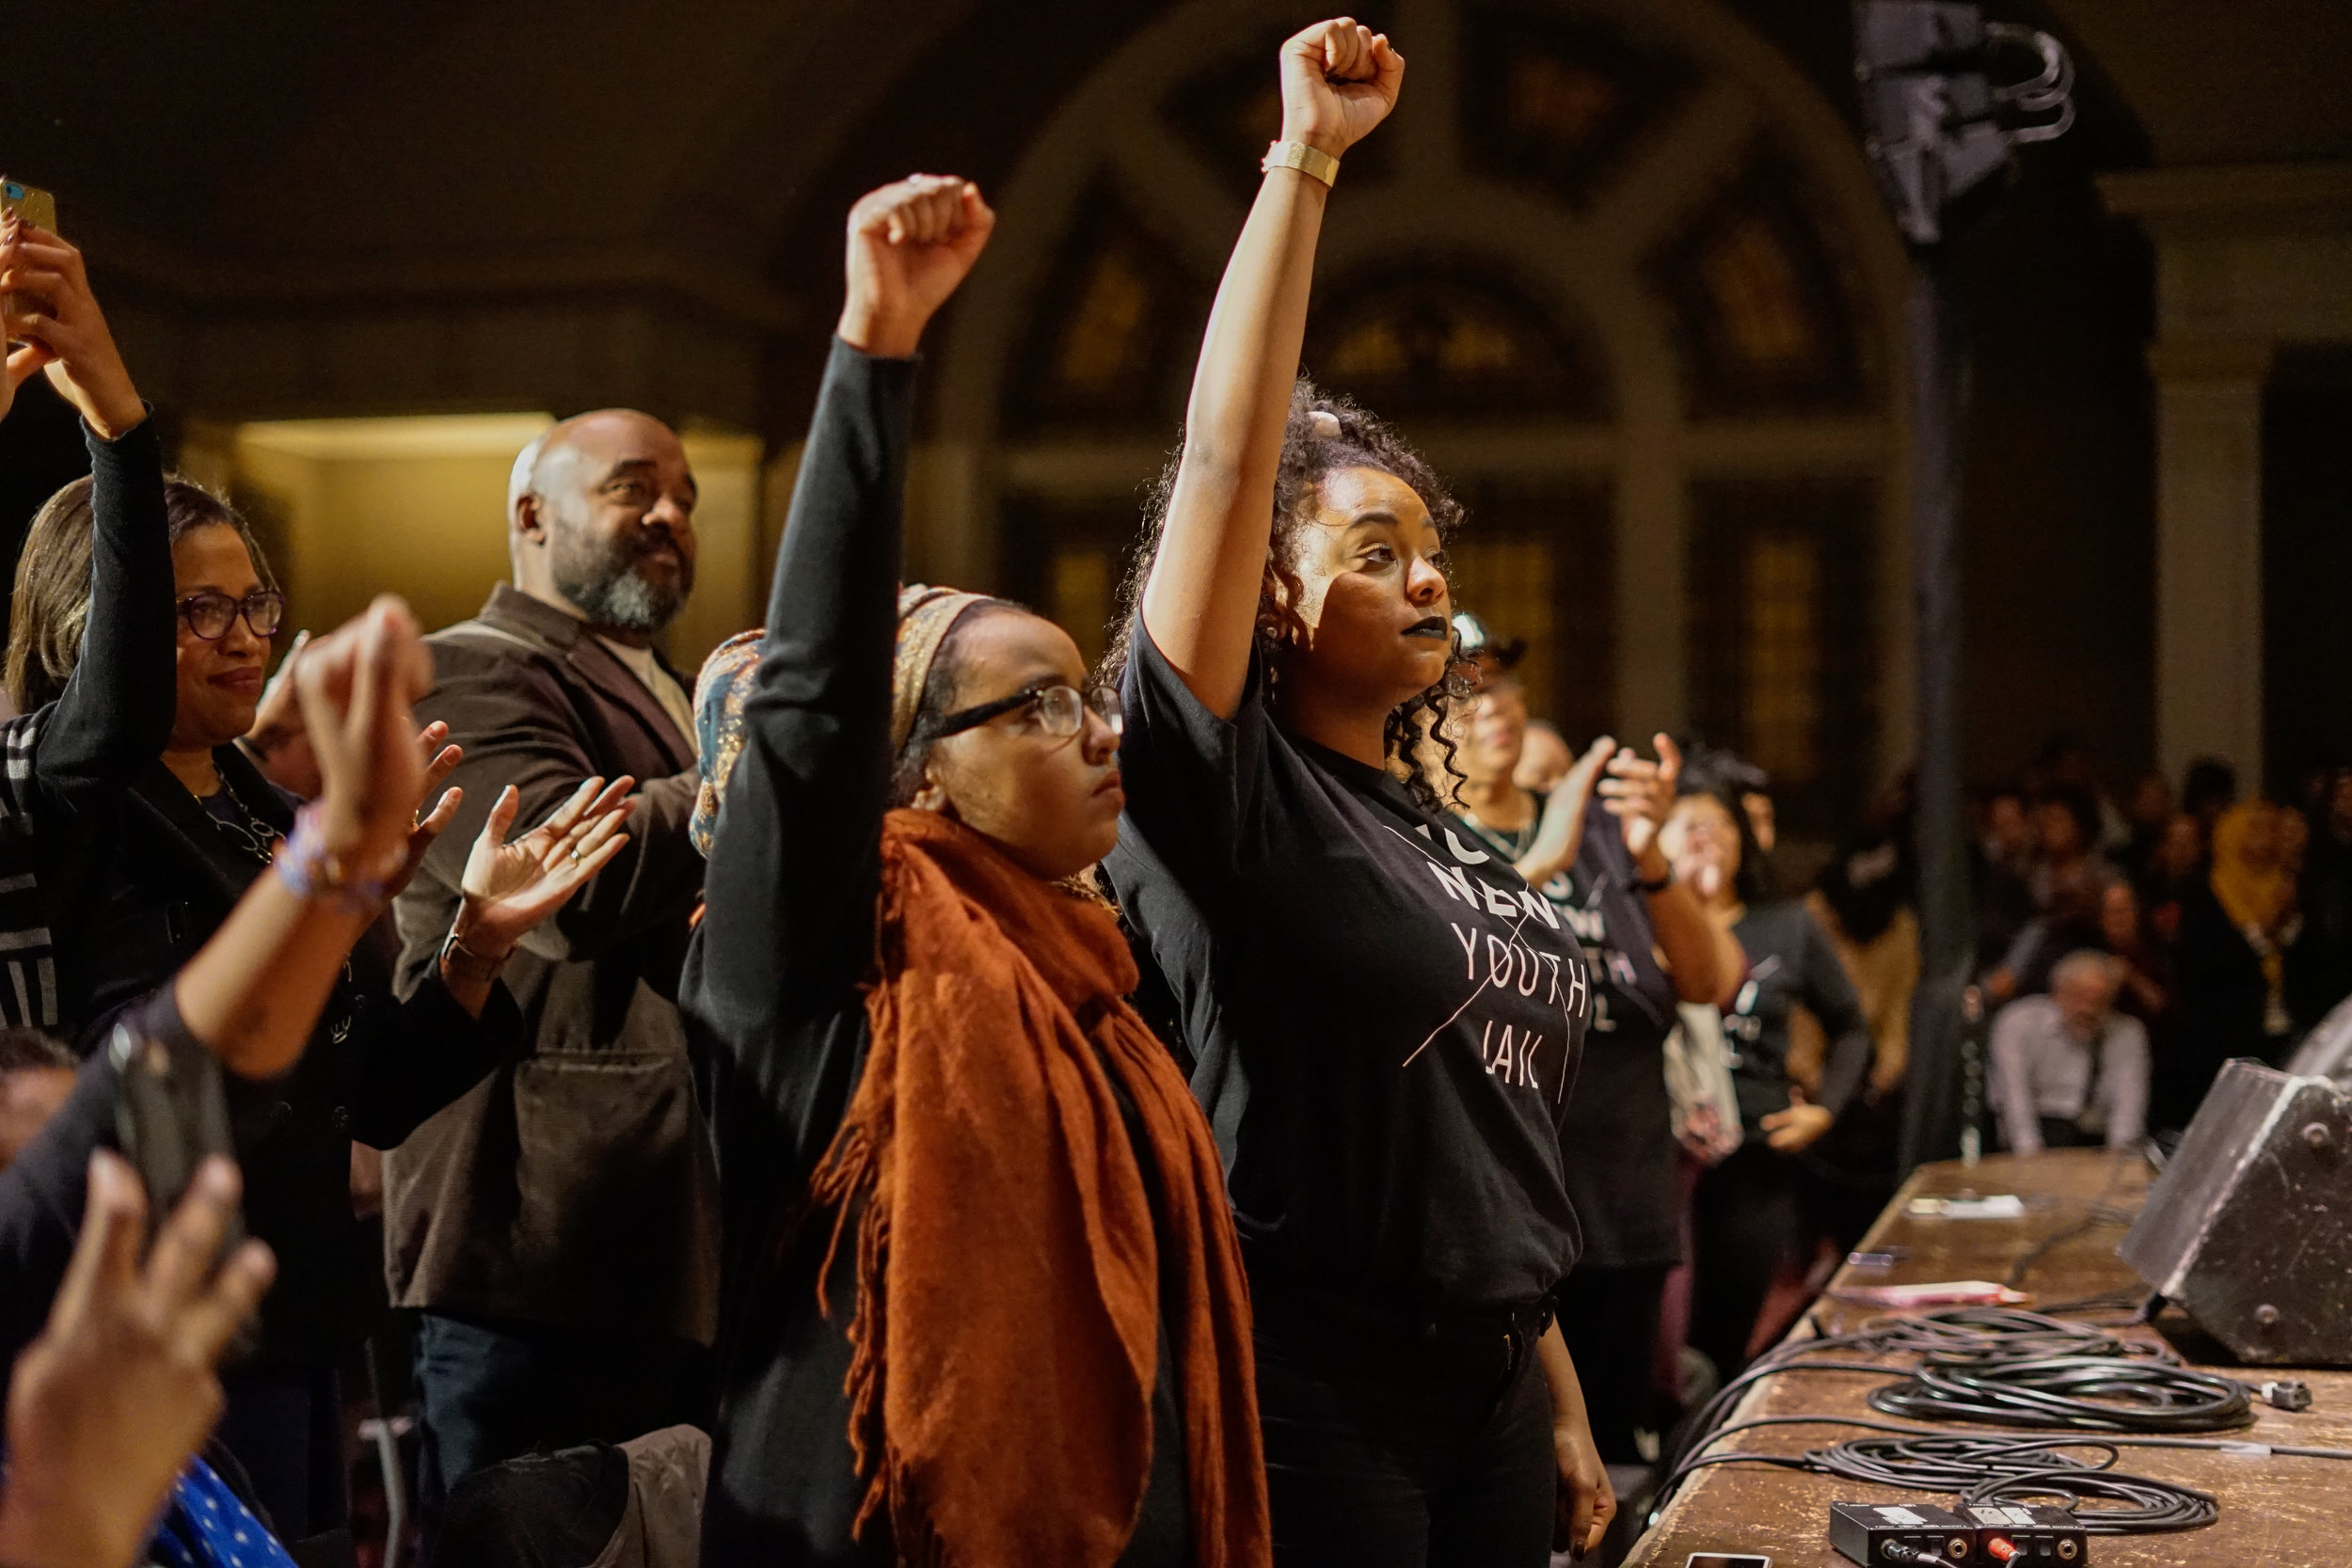 No Youth Jail activists raise their fist in support of Angela Davis' opposition to mass incareration.